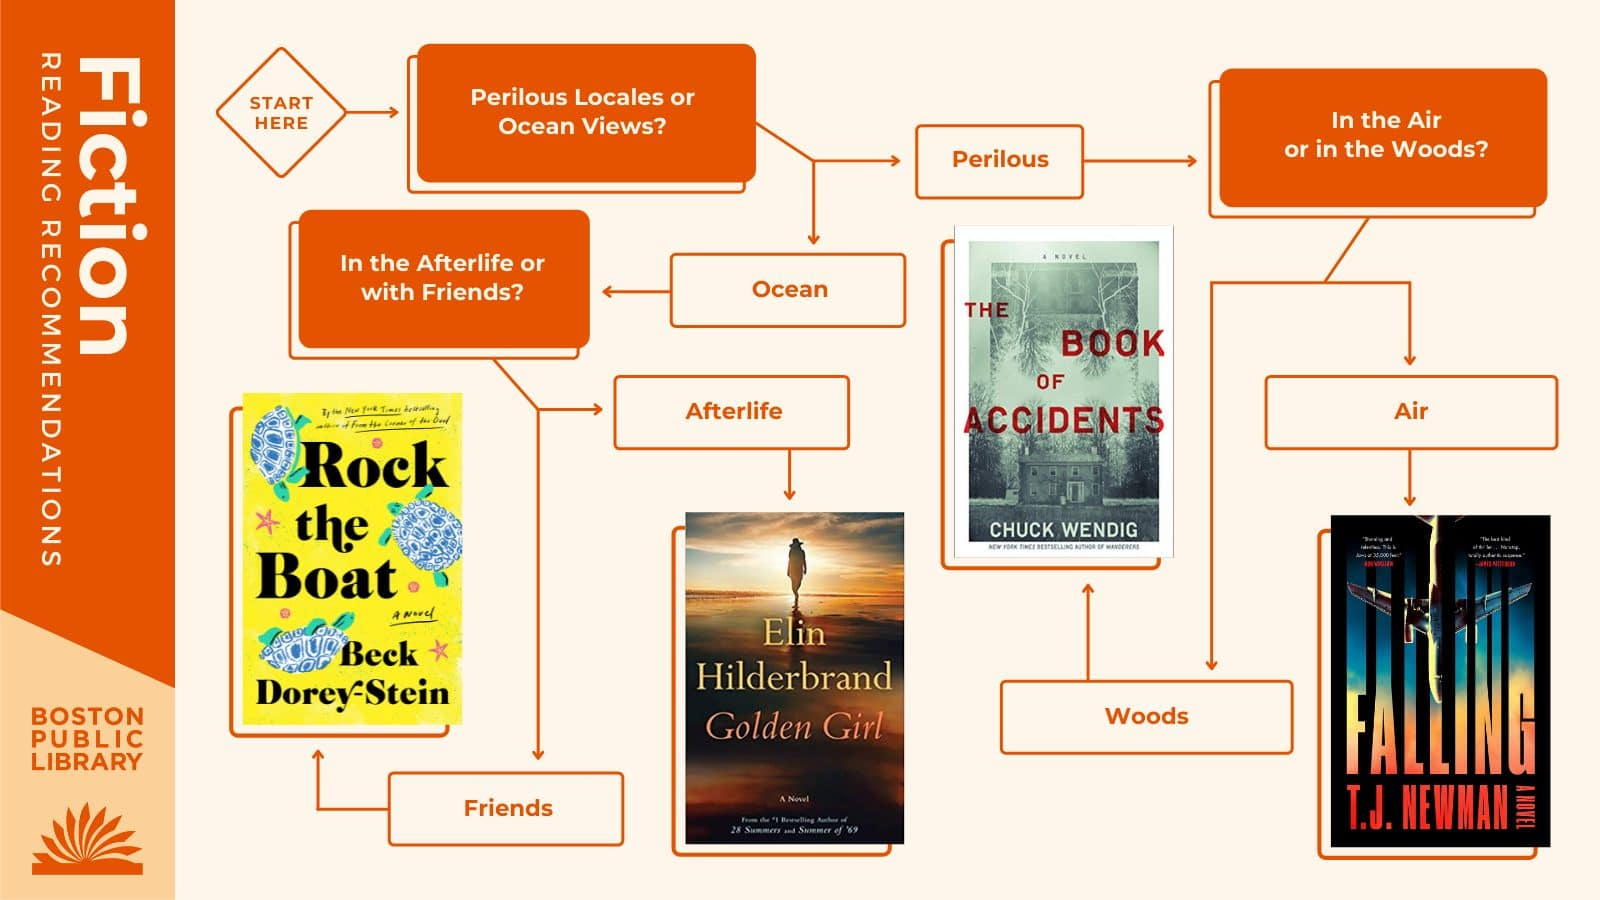 Q1:Perilous Locales orOcean Views? Perilous Locales —> Q2: In the Air orin the Woods? In the Air: Falling by T.J. Newman   In the Woods: The Book of Accidents by Chuck Wendig   Ocean Views—> Q3:In the Afterlifeor with Friends?   In the Afterlife: Golden Girl by Elin Hilderbrand   With Friends: Rock the Boat by Beck Dorey-Stein